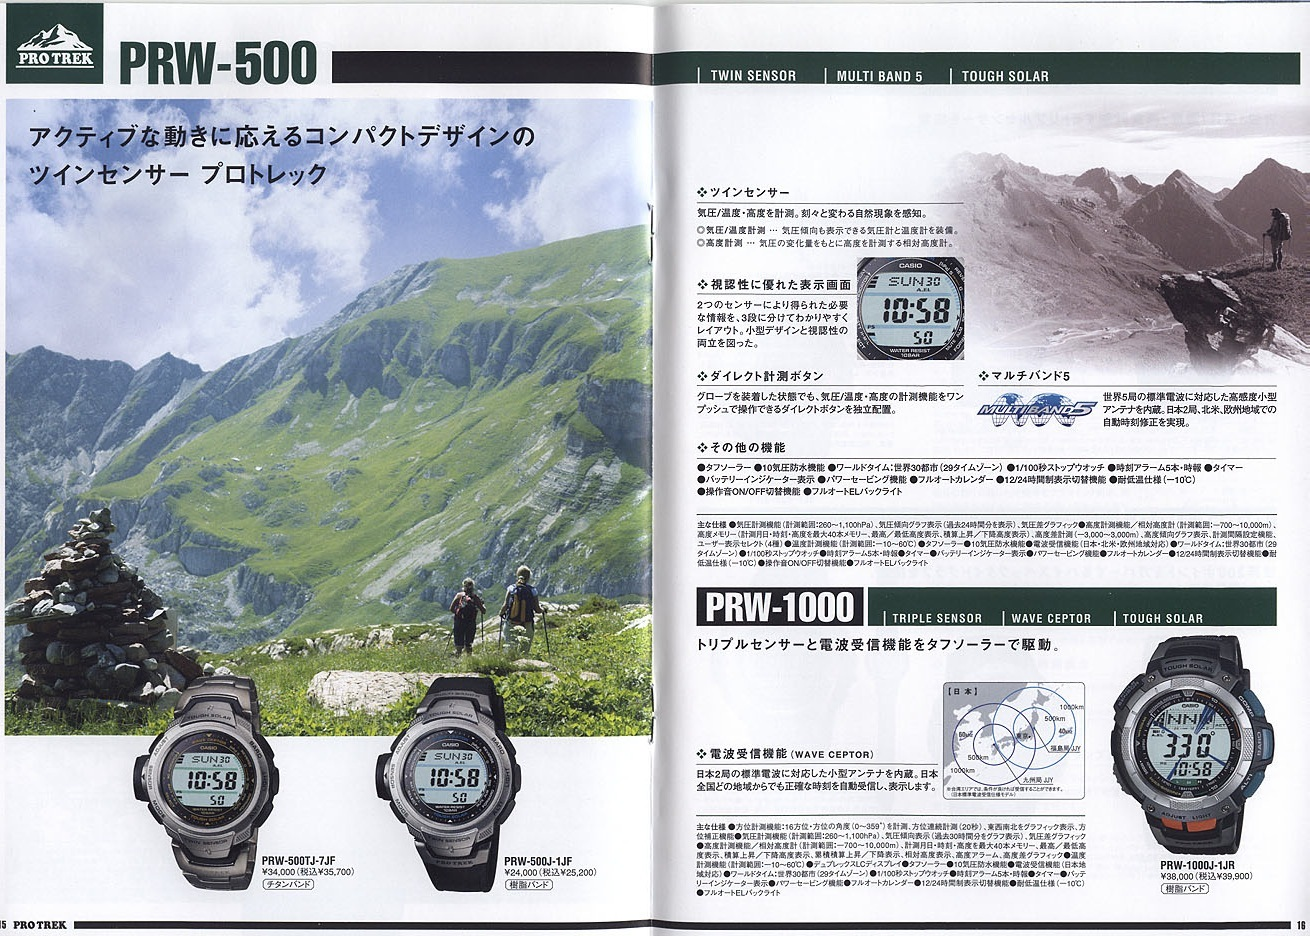 Casio-Pro-Trek-Collection-Summer-2009-Page-9.jpg